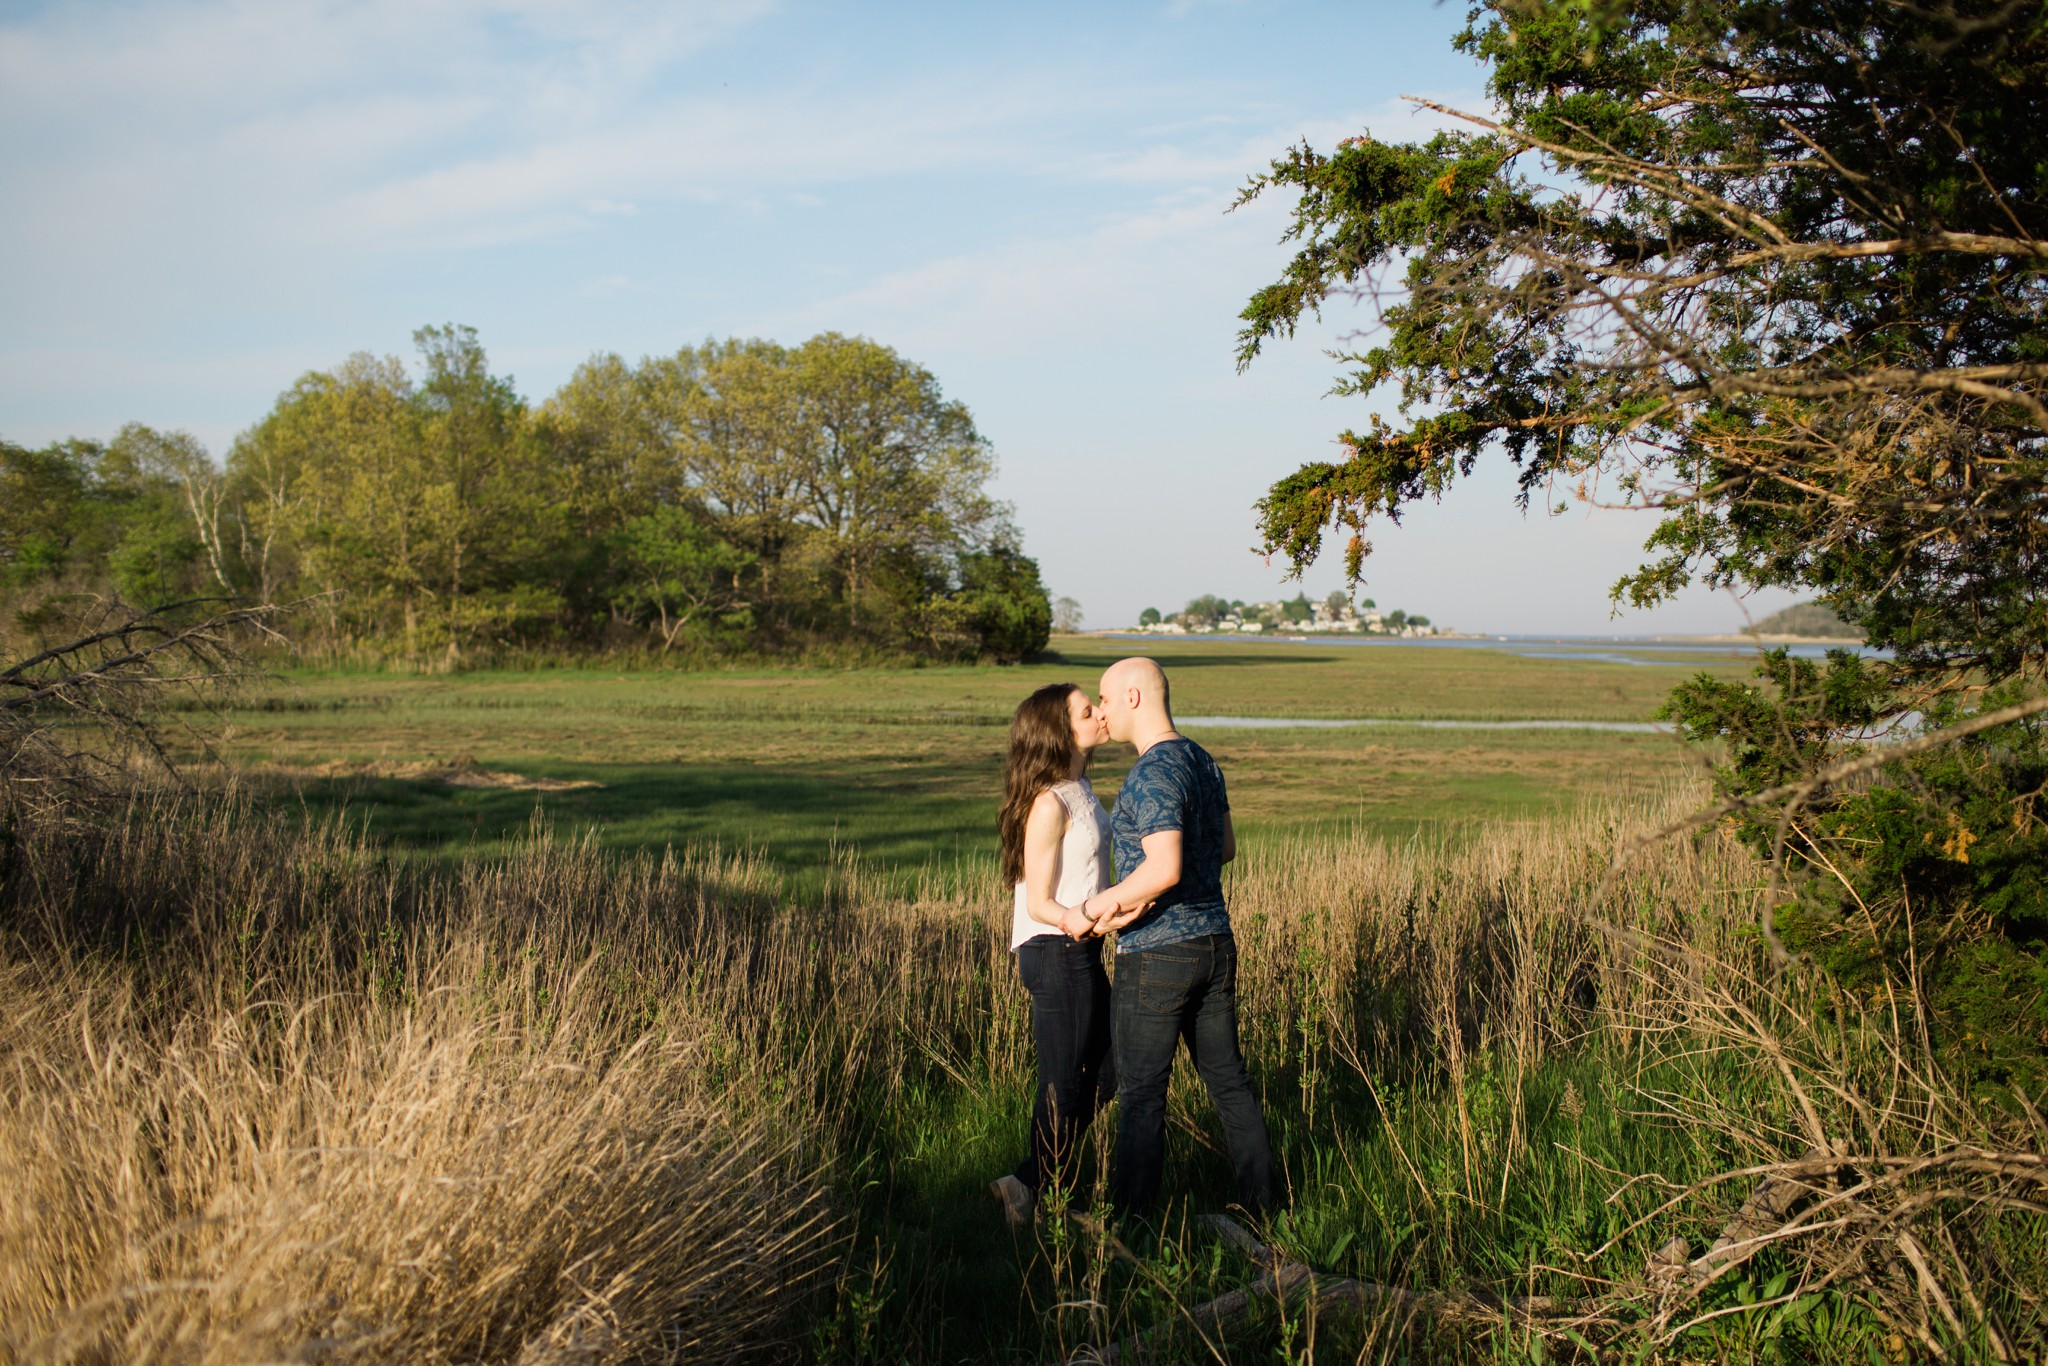 deborah_zoe_photography_engagement_session_0093.JPG